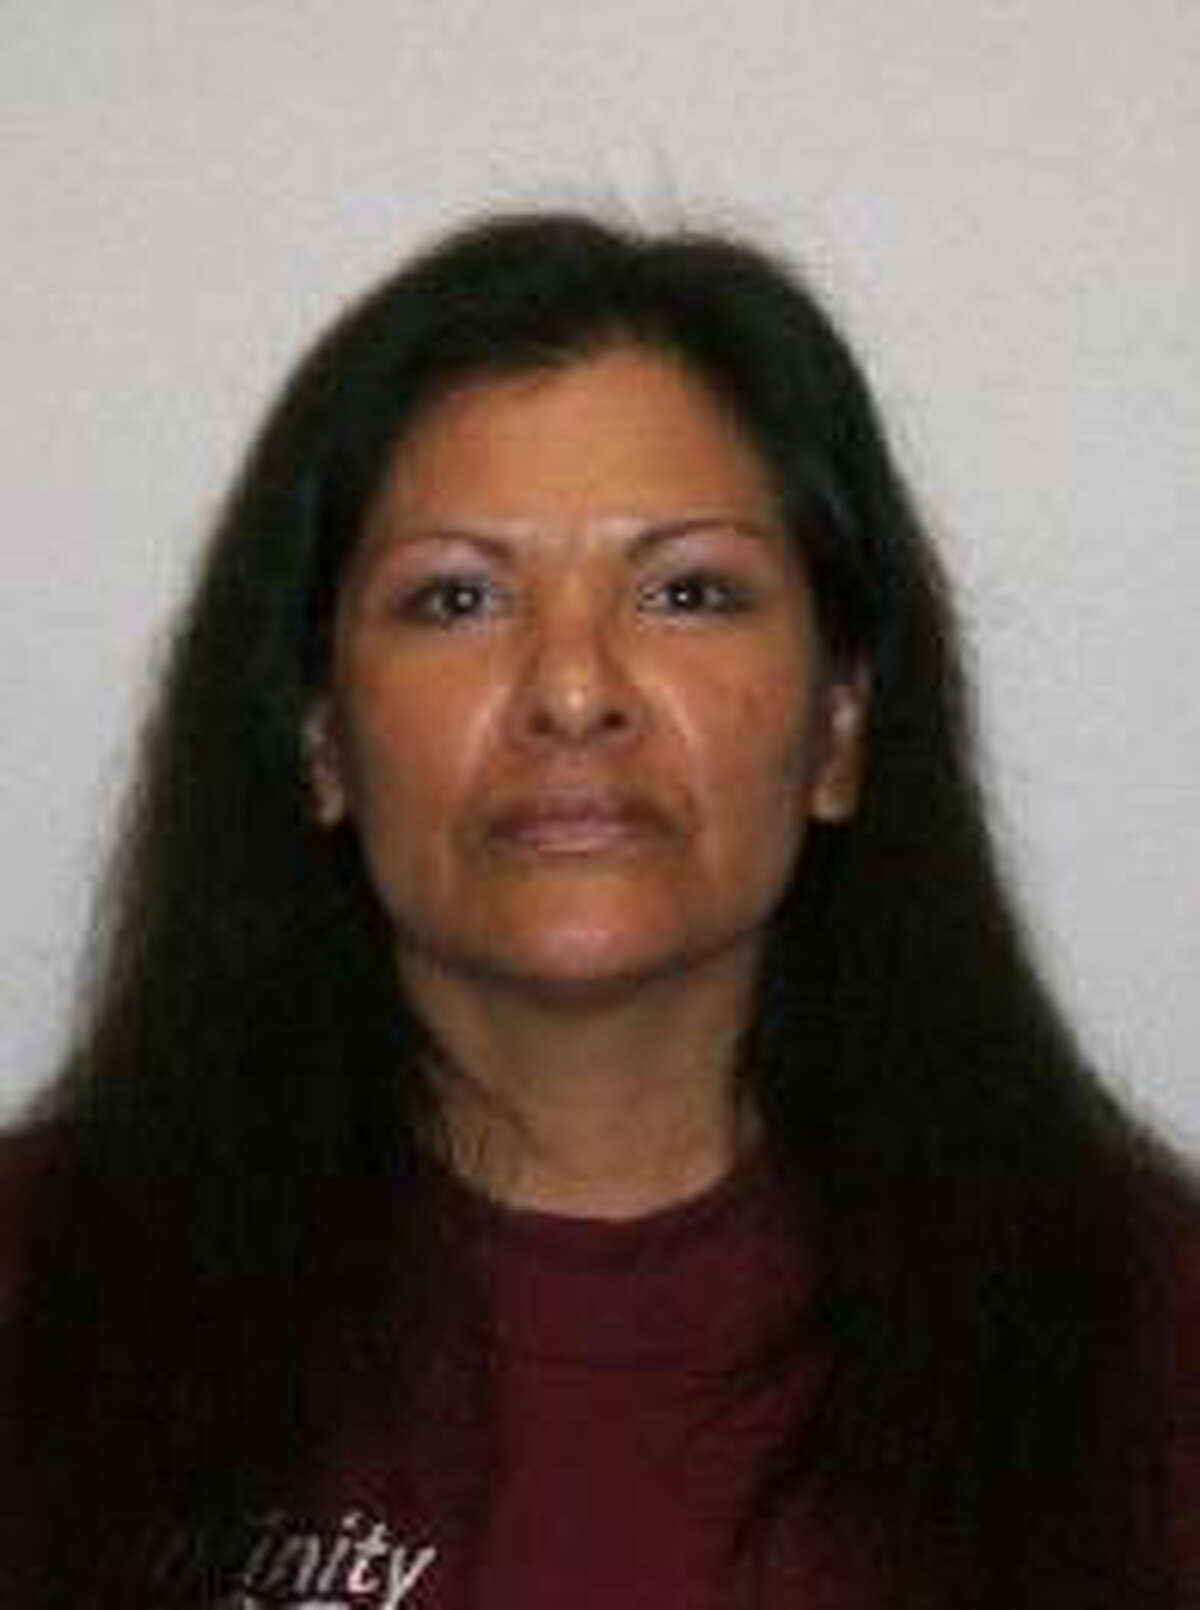 Maria Lena Fuentes, 48, was previously convicted of assault as well as gun and drug crimes in Spokane County. She also goes by Maria Christensen, Maria Lena Feuentes and Maria L. Hudson. A warrant for the Montana woman's arrest was issued Jan. 16, 2013. Anyone with information can contact the Department of Corrections at 866-359-1939 or by visiting doc.wa.gov.